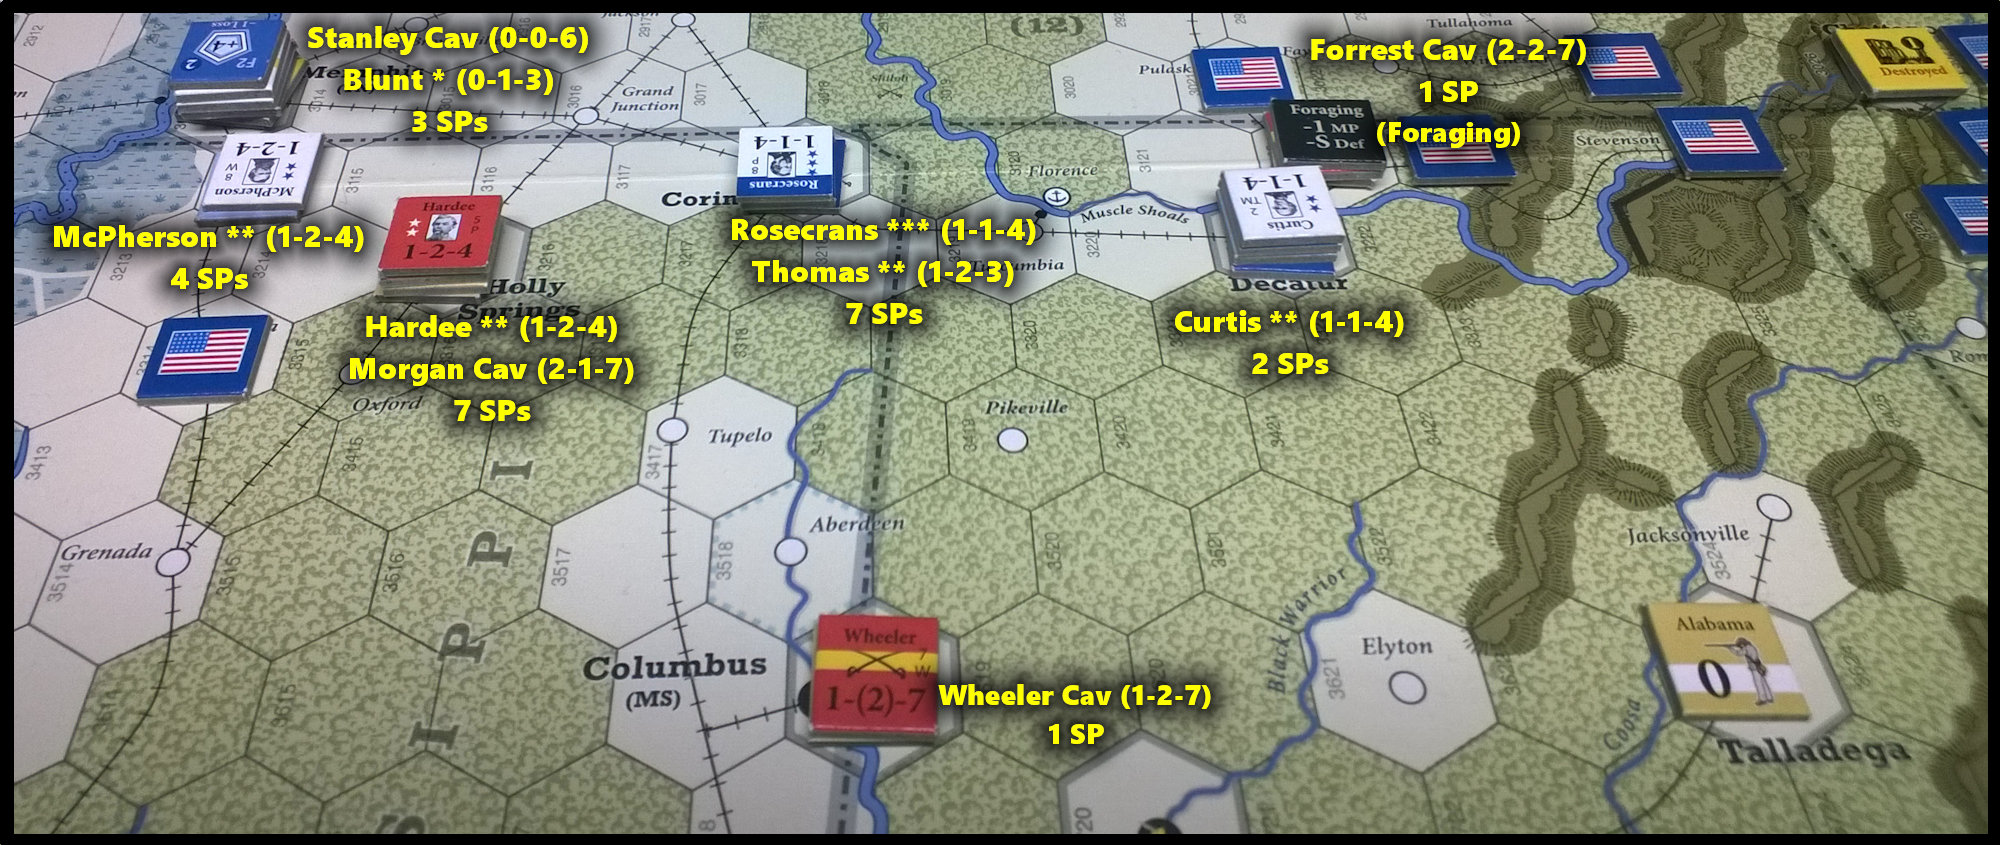 The U.S. Civil War: The Western Theater (Mississippi) at the end of Game Turn 8